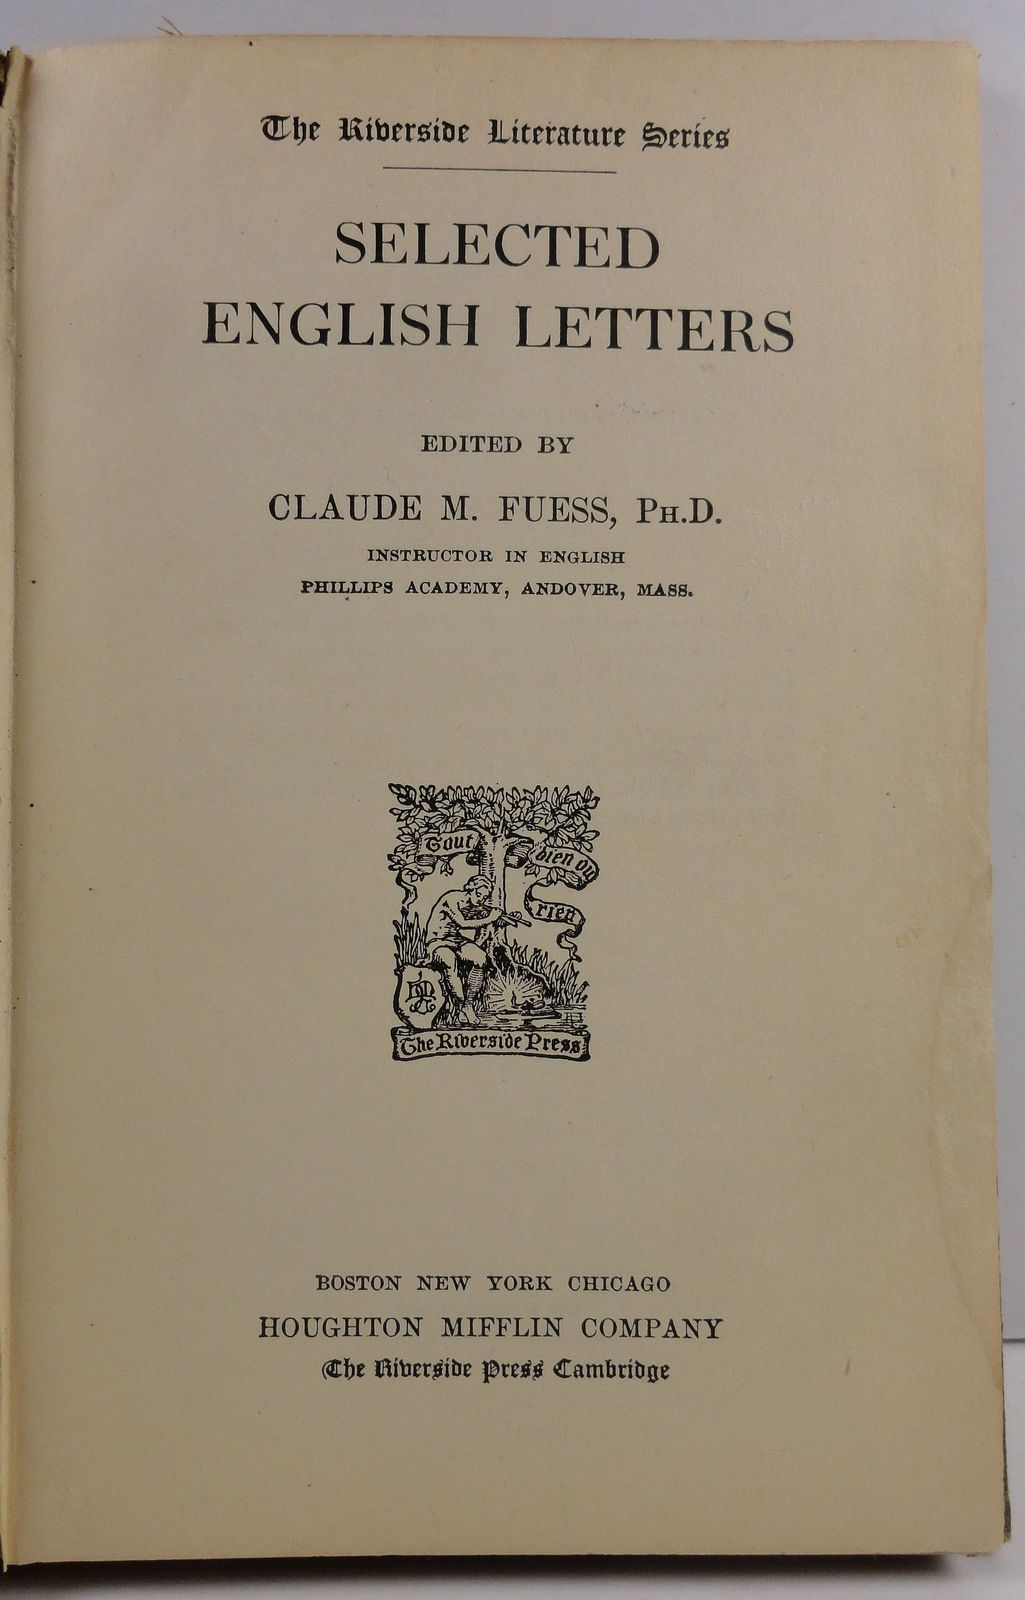 Selected English Letters edited by Claude M. Fuess 1914